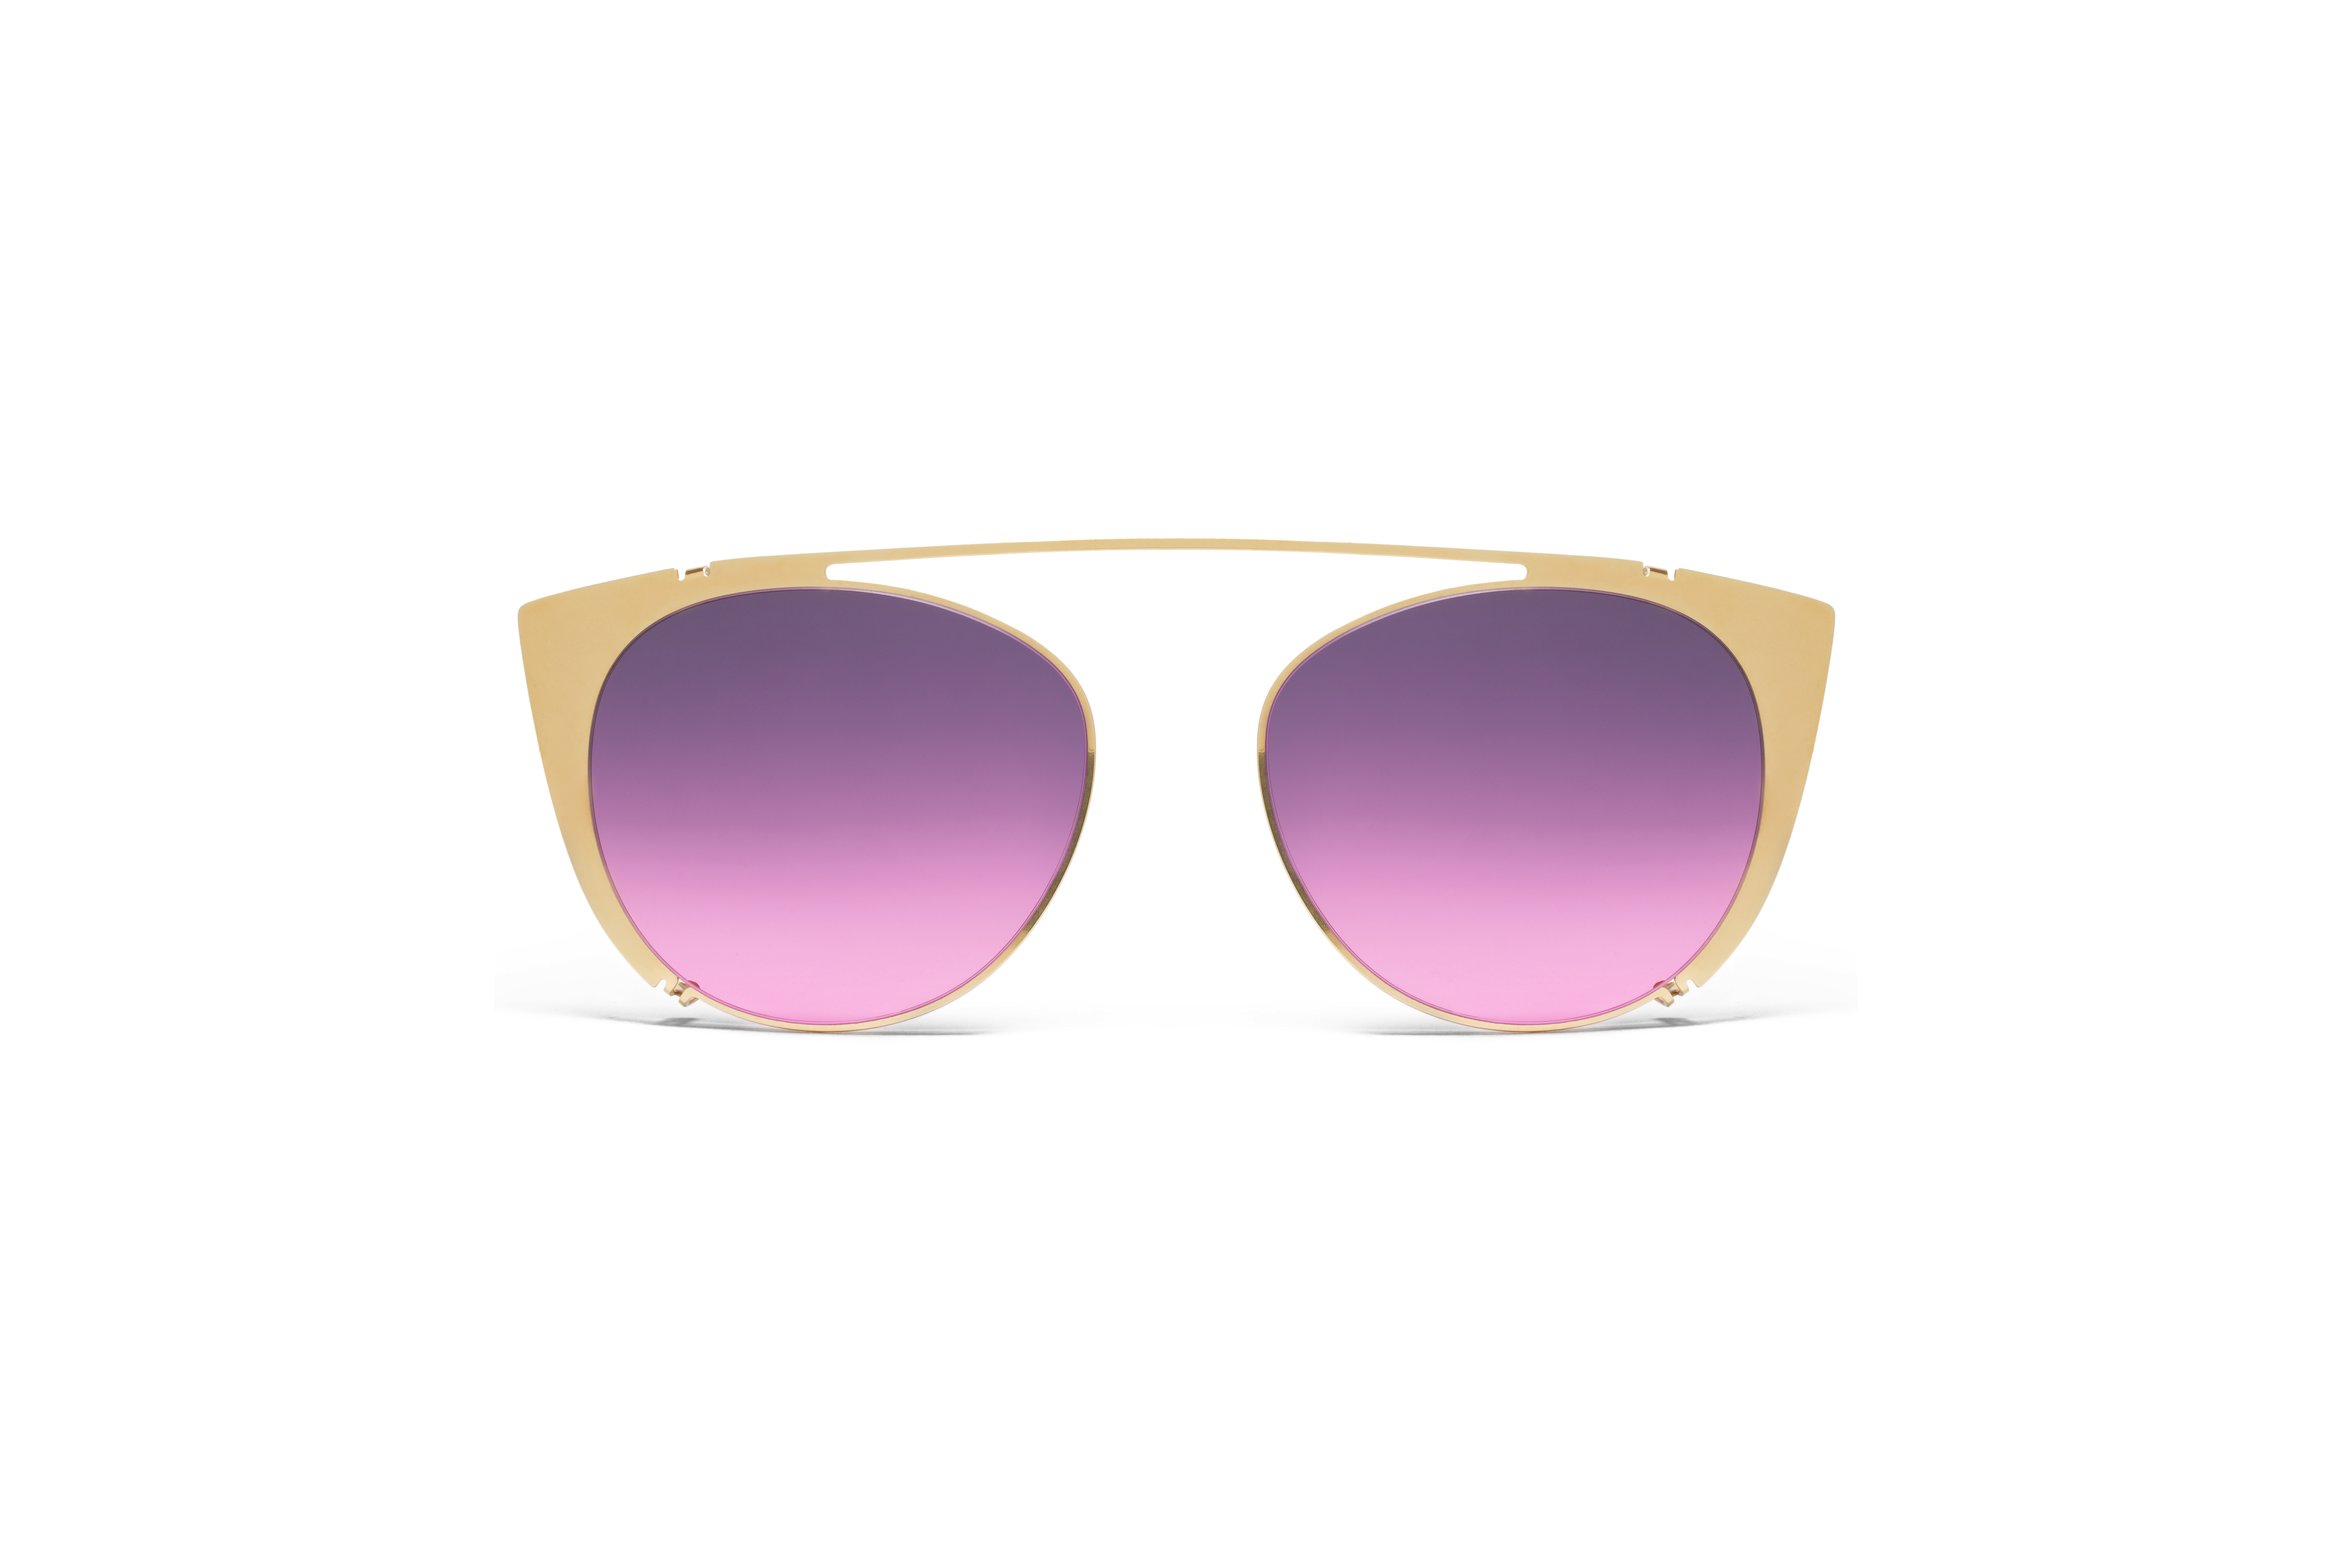 MYKITA No2 Sun Teresa Shades Glossygold Purple Pin